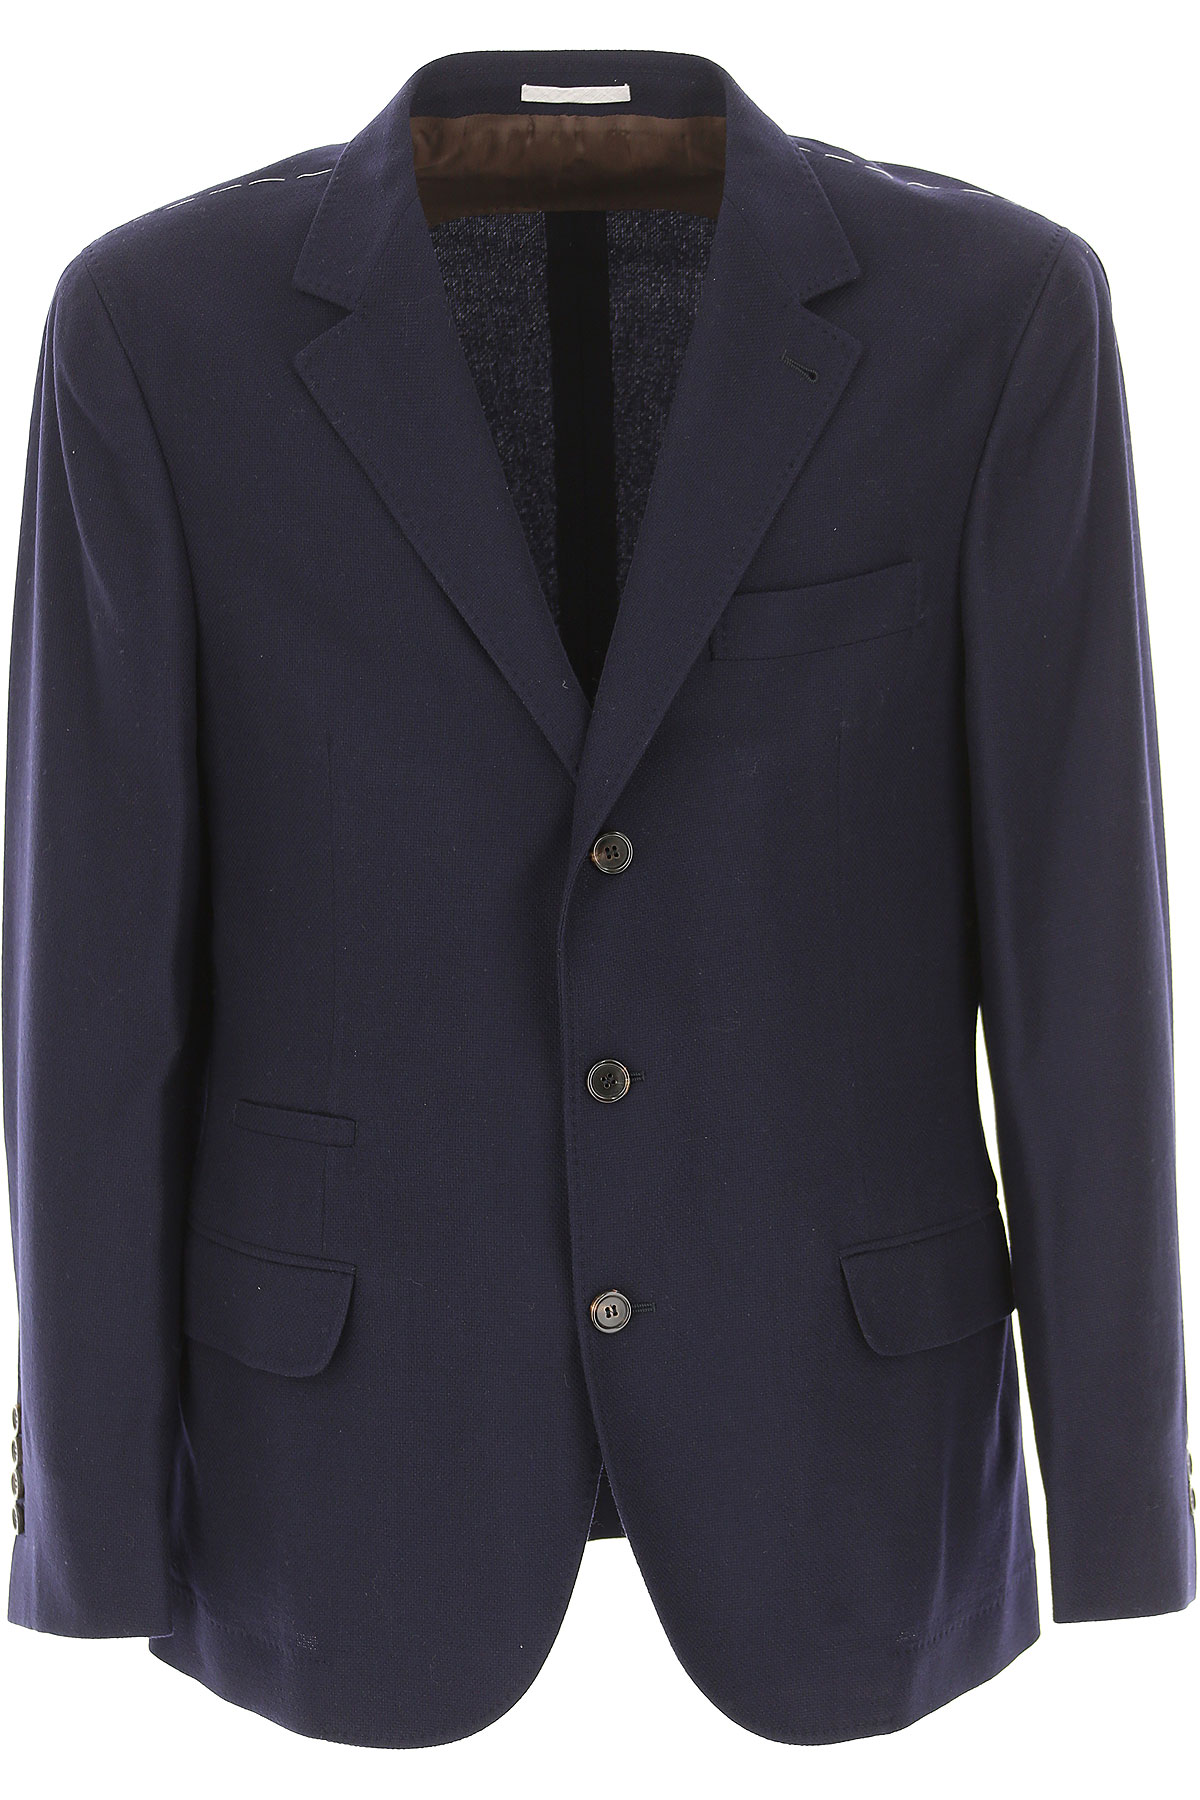 Brunello Cucinelli Blazer for Men, Sport Coat, Navy Blue, Cashemere, 2019, L M XL